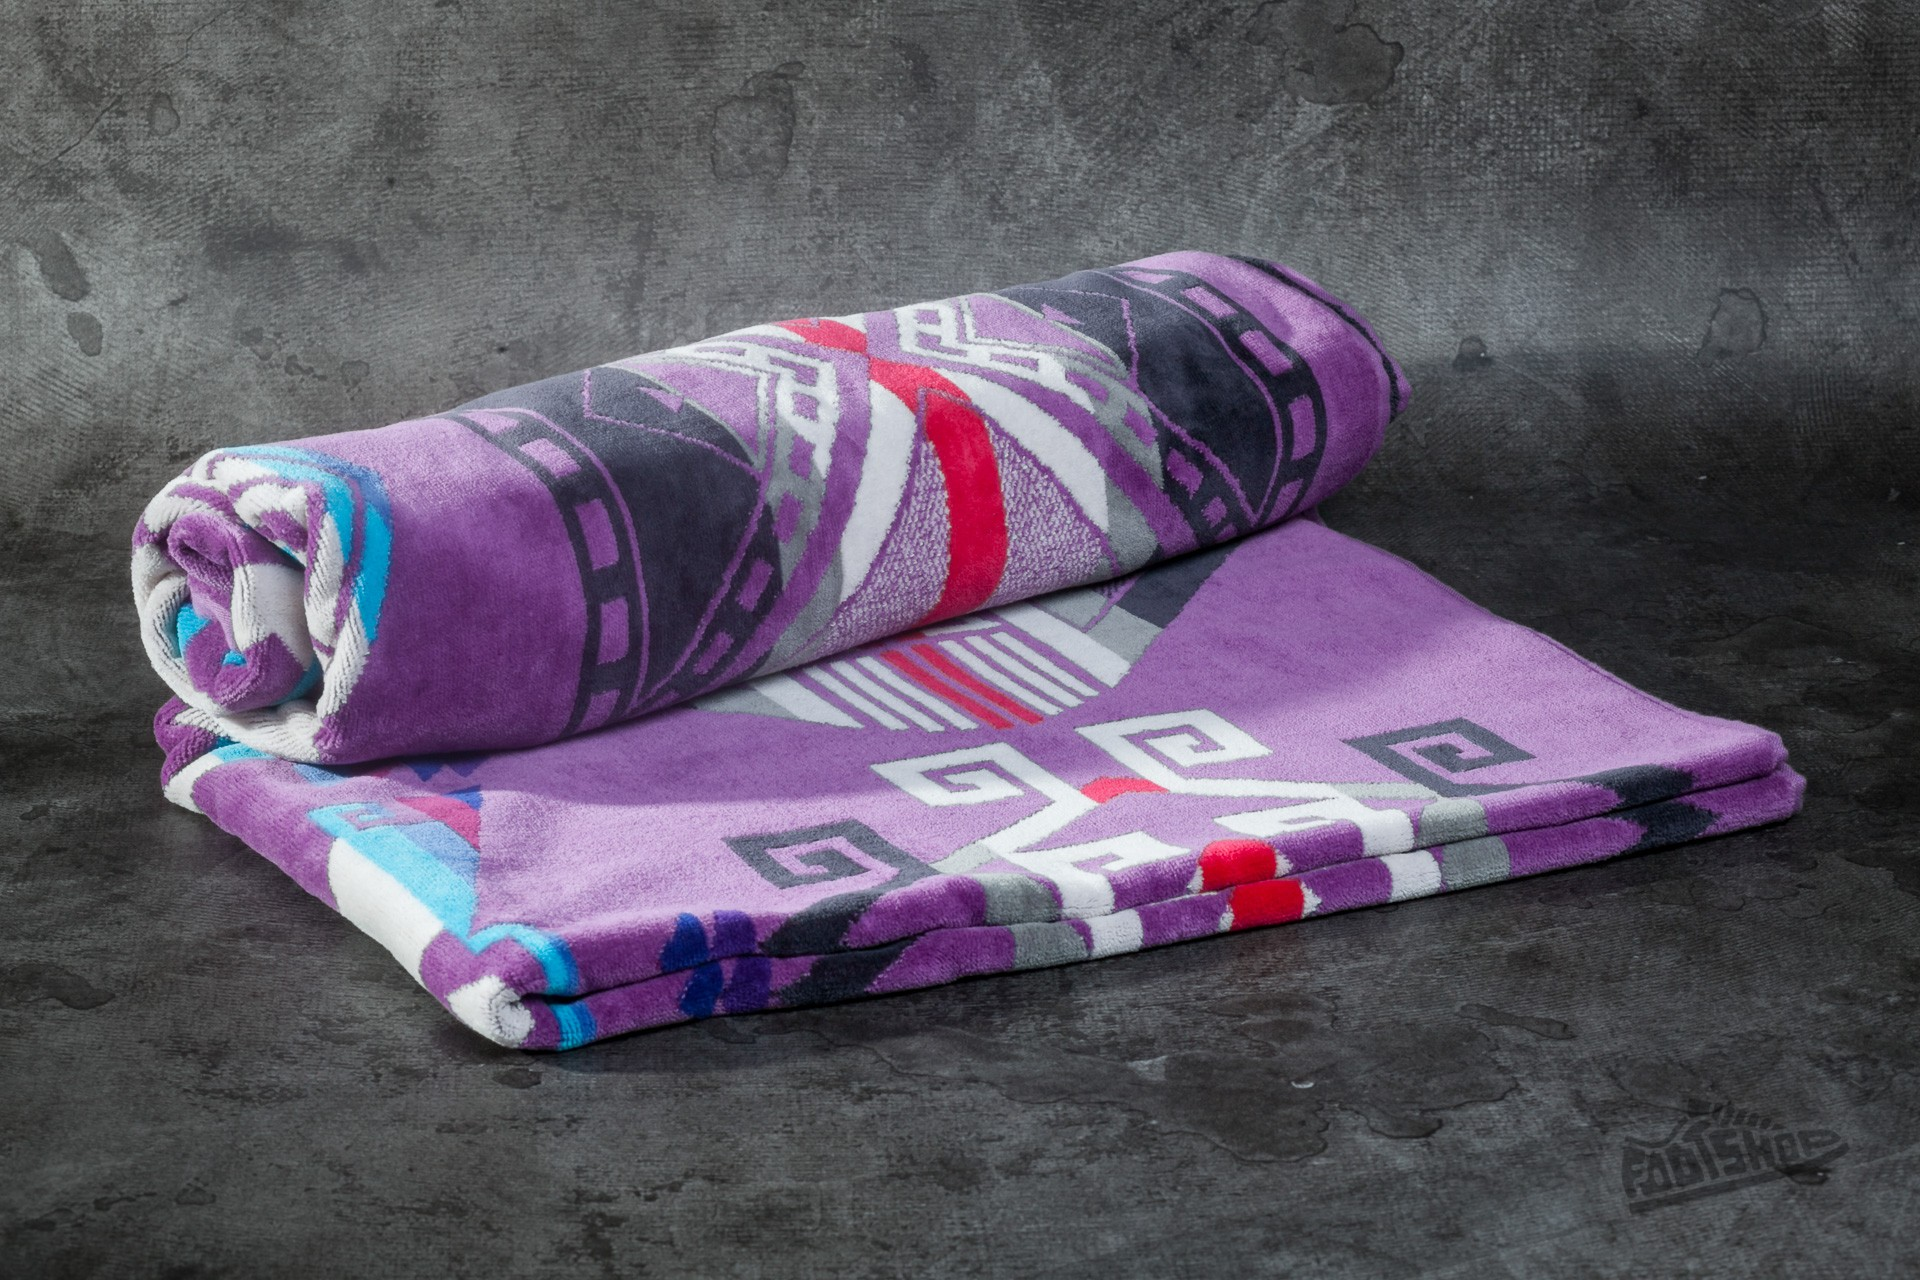 Pendleton Purple Hills Jacquard Beach Towel Lilac Footshop – FR